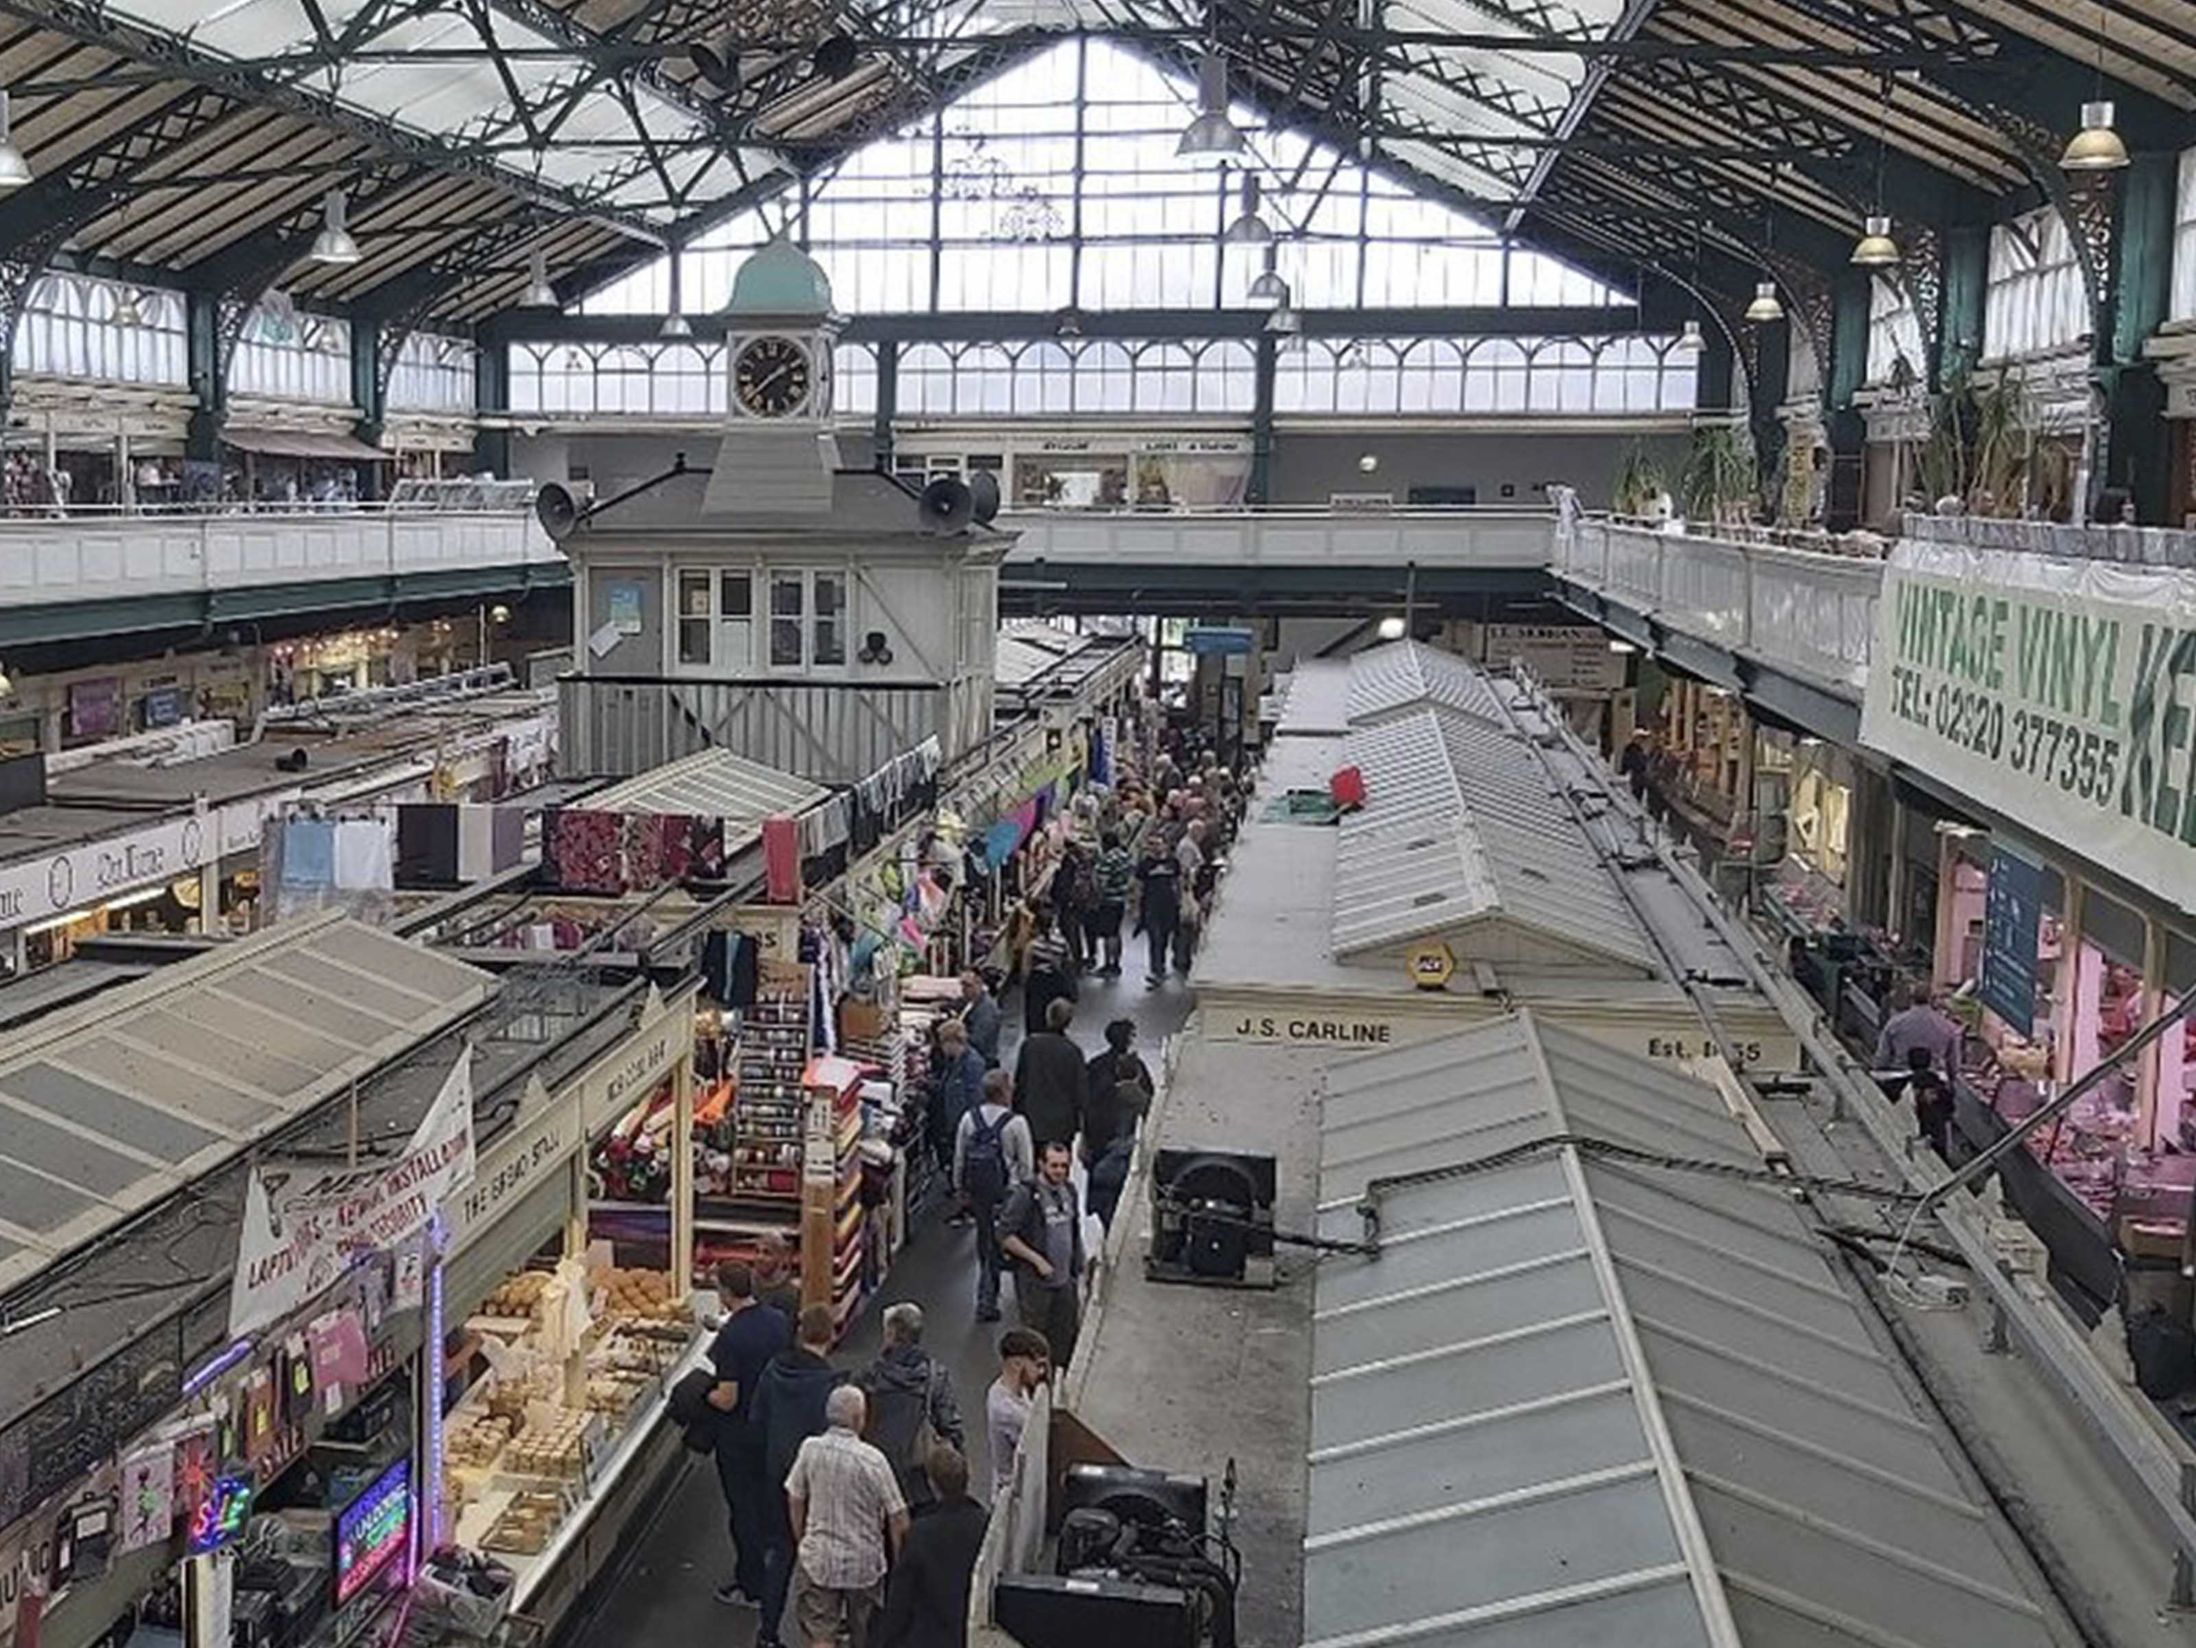 Things to do in Cardiff - Cardiff Central Market